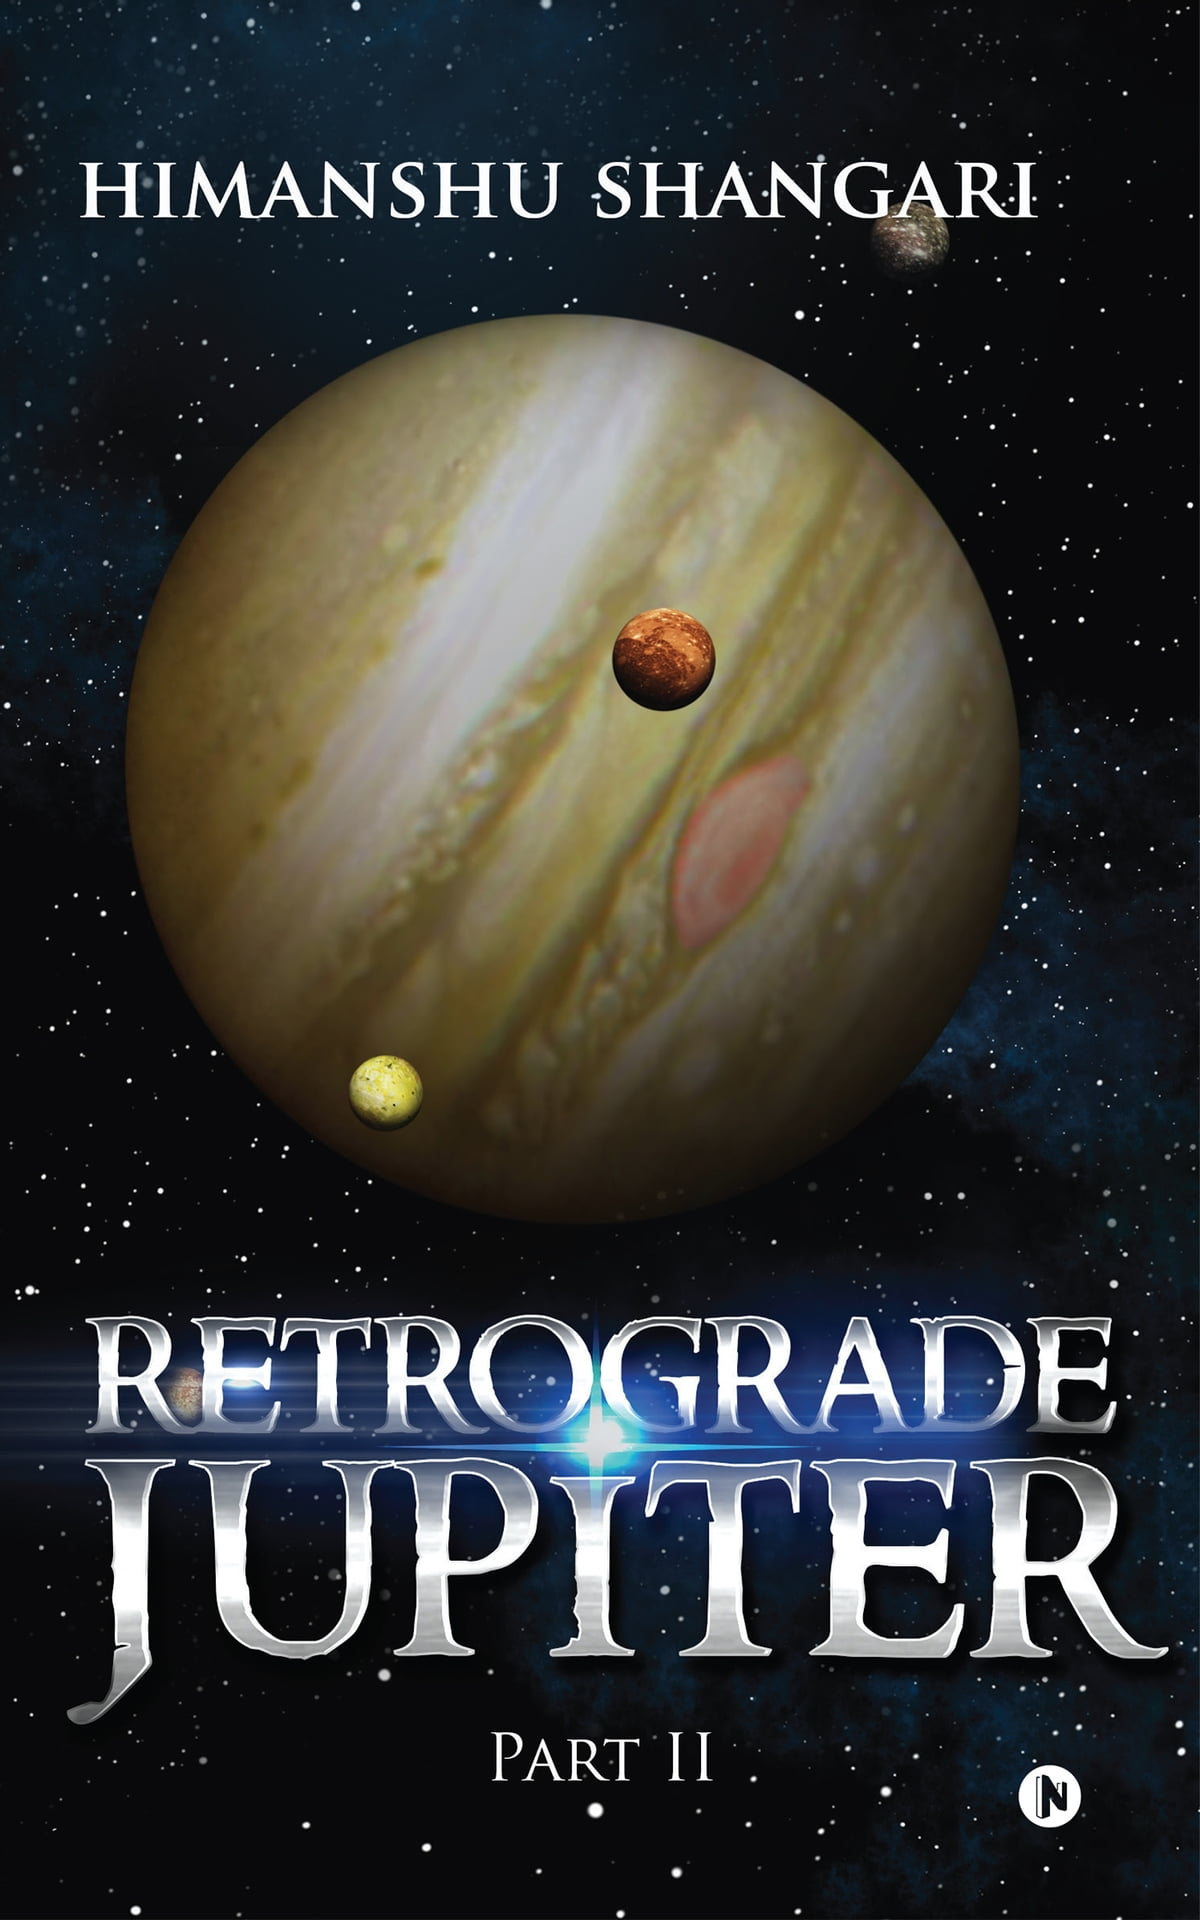 Retrograde Jupiter Part Ii Ebook By Himanshu Shangari